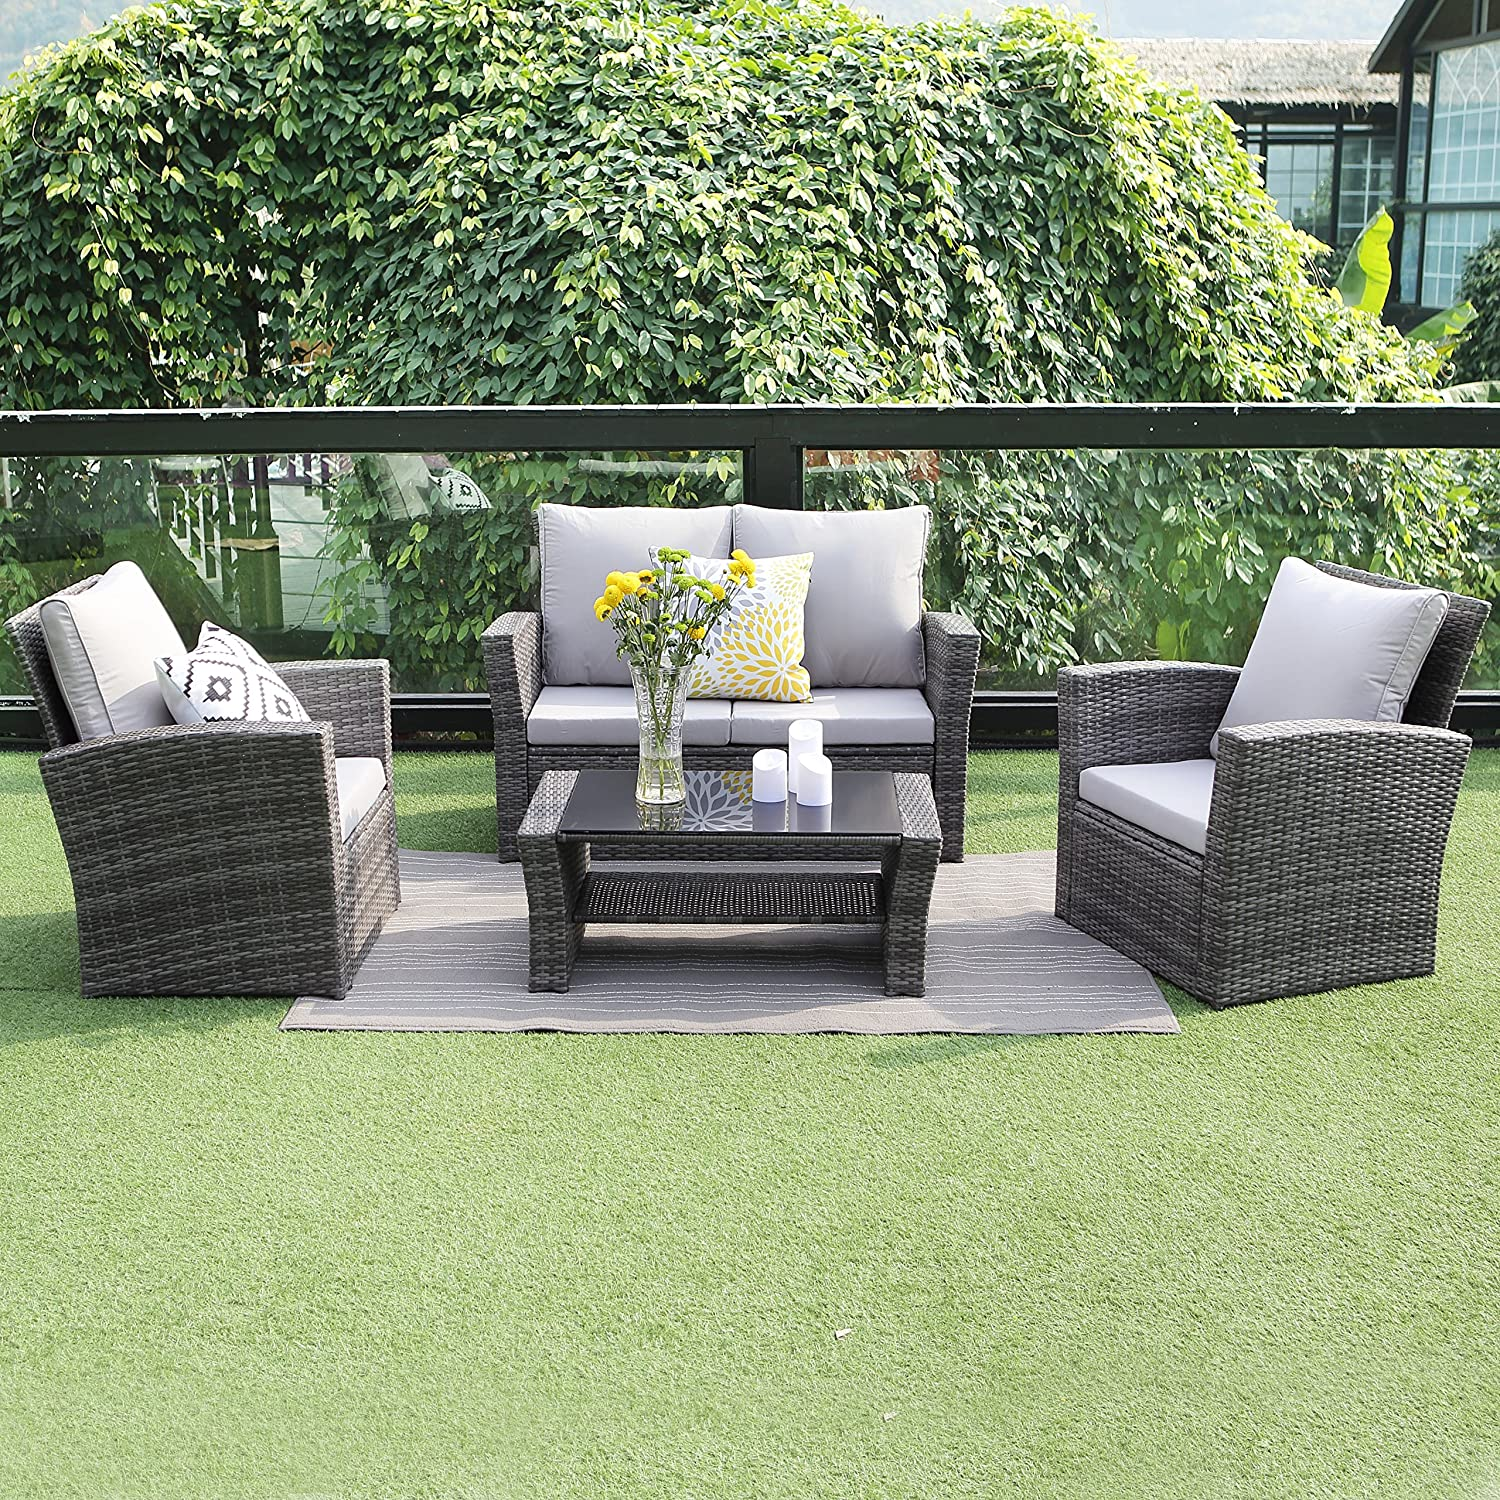 patio furniture model review